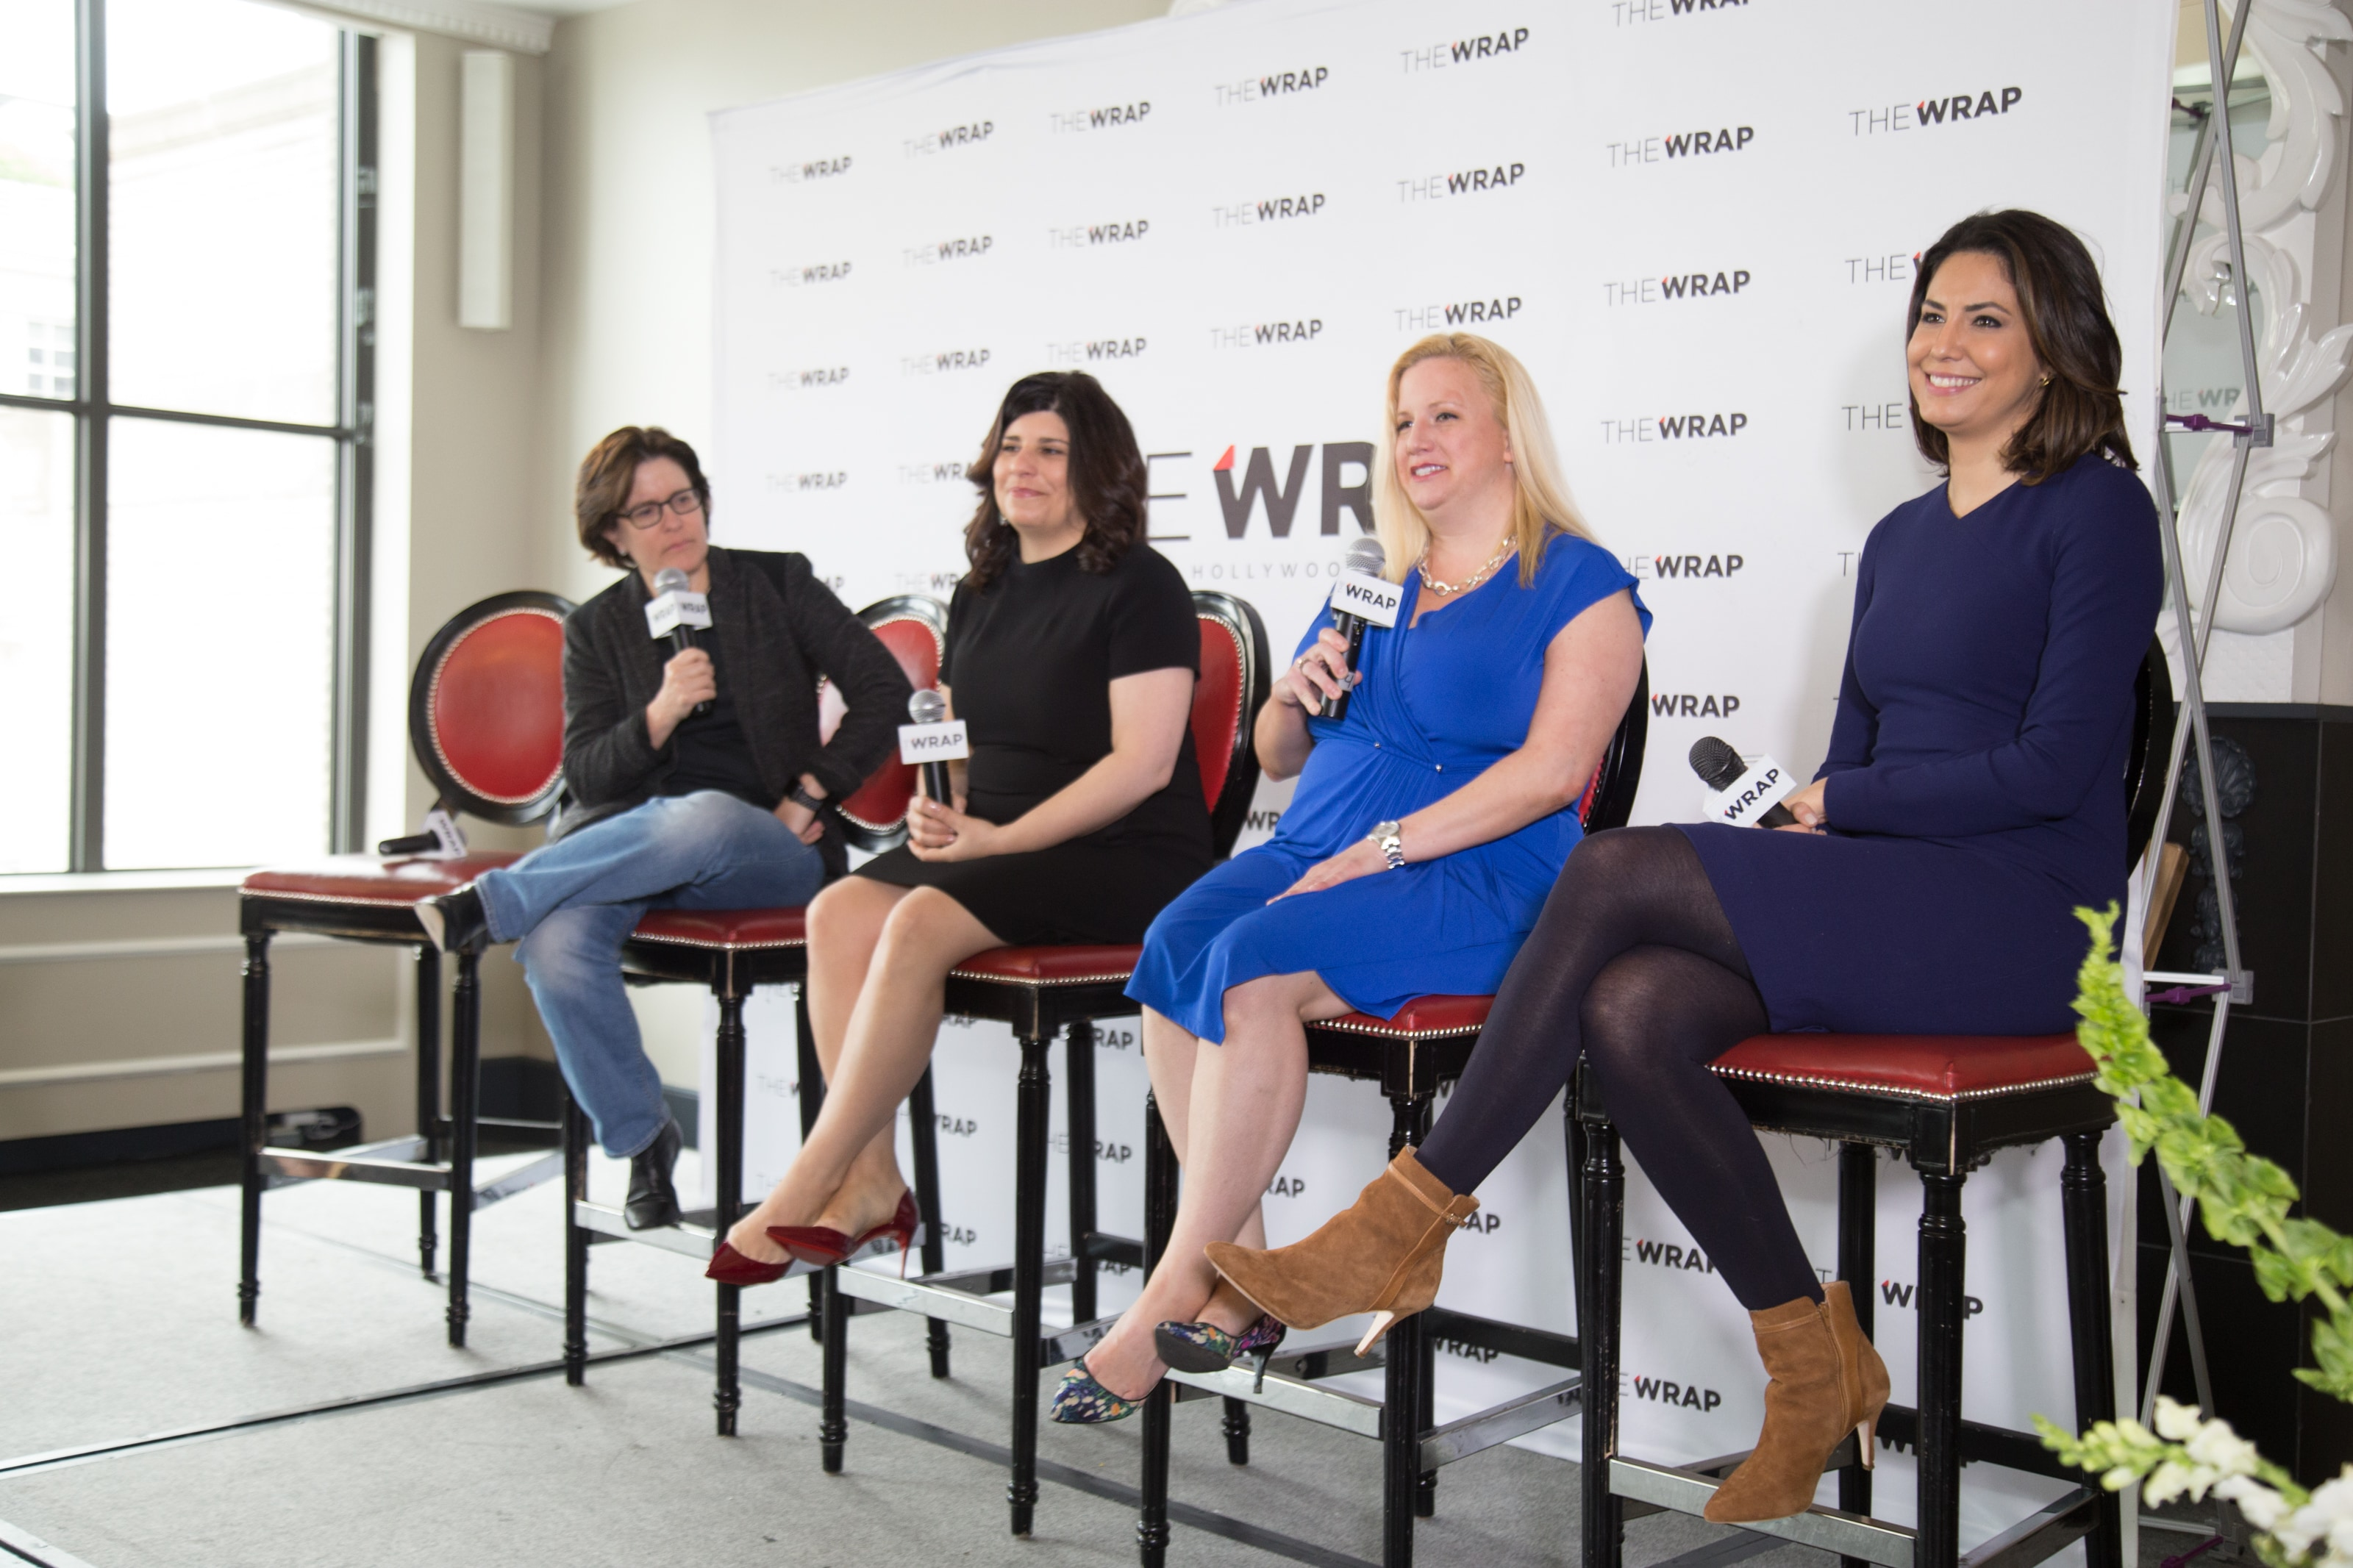 Kara Swisher, Carrie Budoff Brown, Cecilia Vega and Christina Wilkie at Power Women Breakfast